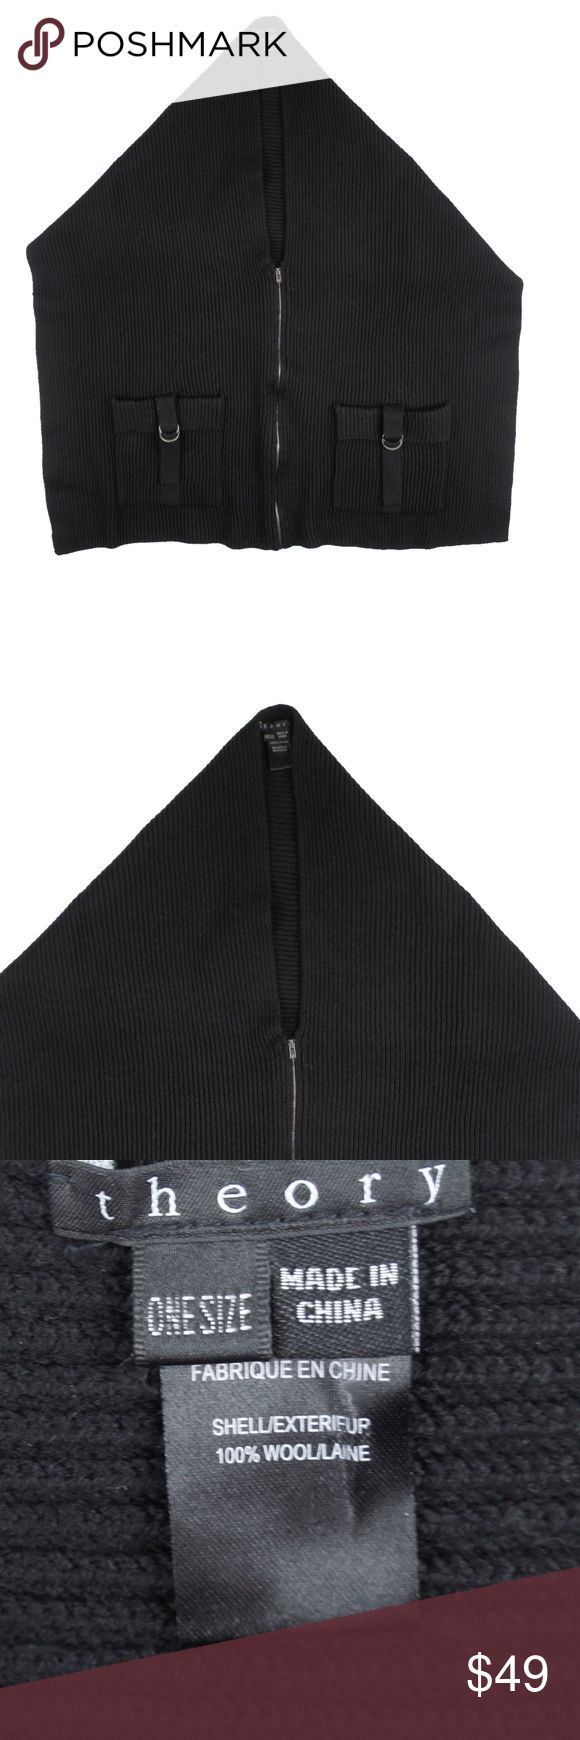 """Theory Black Open Back Ribbed Smock Poncho Sweater Size -  One Size  This black wool ribbed poncho/smock sweater form THEORY is in excellent condition. It features a zipper front, and front pockets. The front is much longer than the back. The back just drapes over the shoulders as seen in the last picture. Pullover style. 100% Wool.  Measures:  Total Length: 28"""" in front Theory Sweaters Shrugs & Ponchos"""